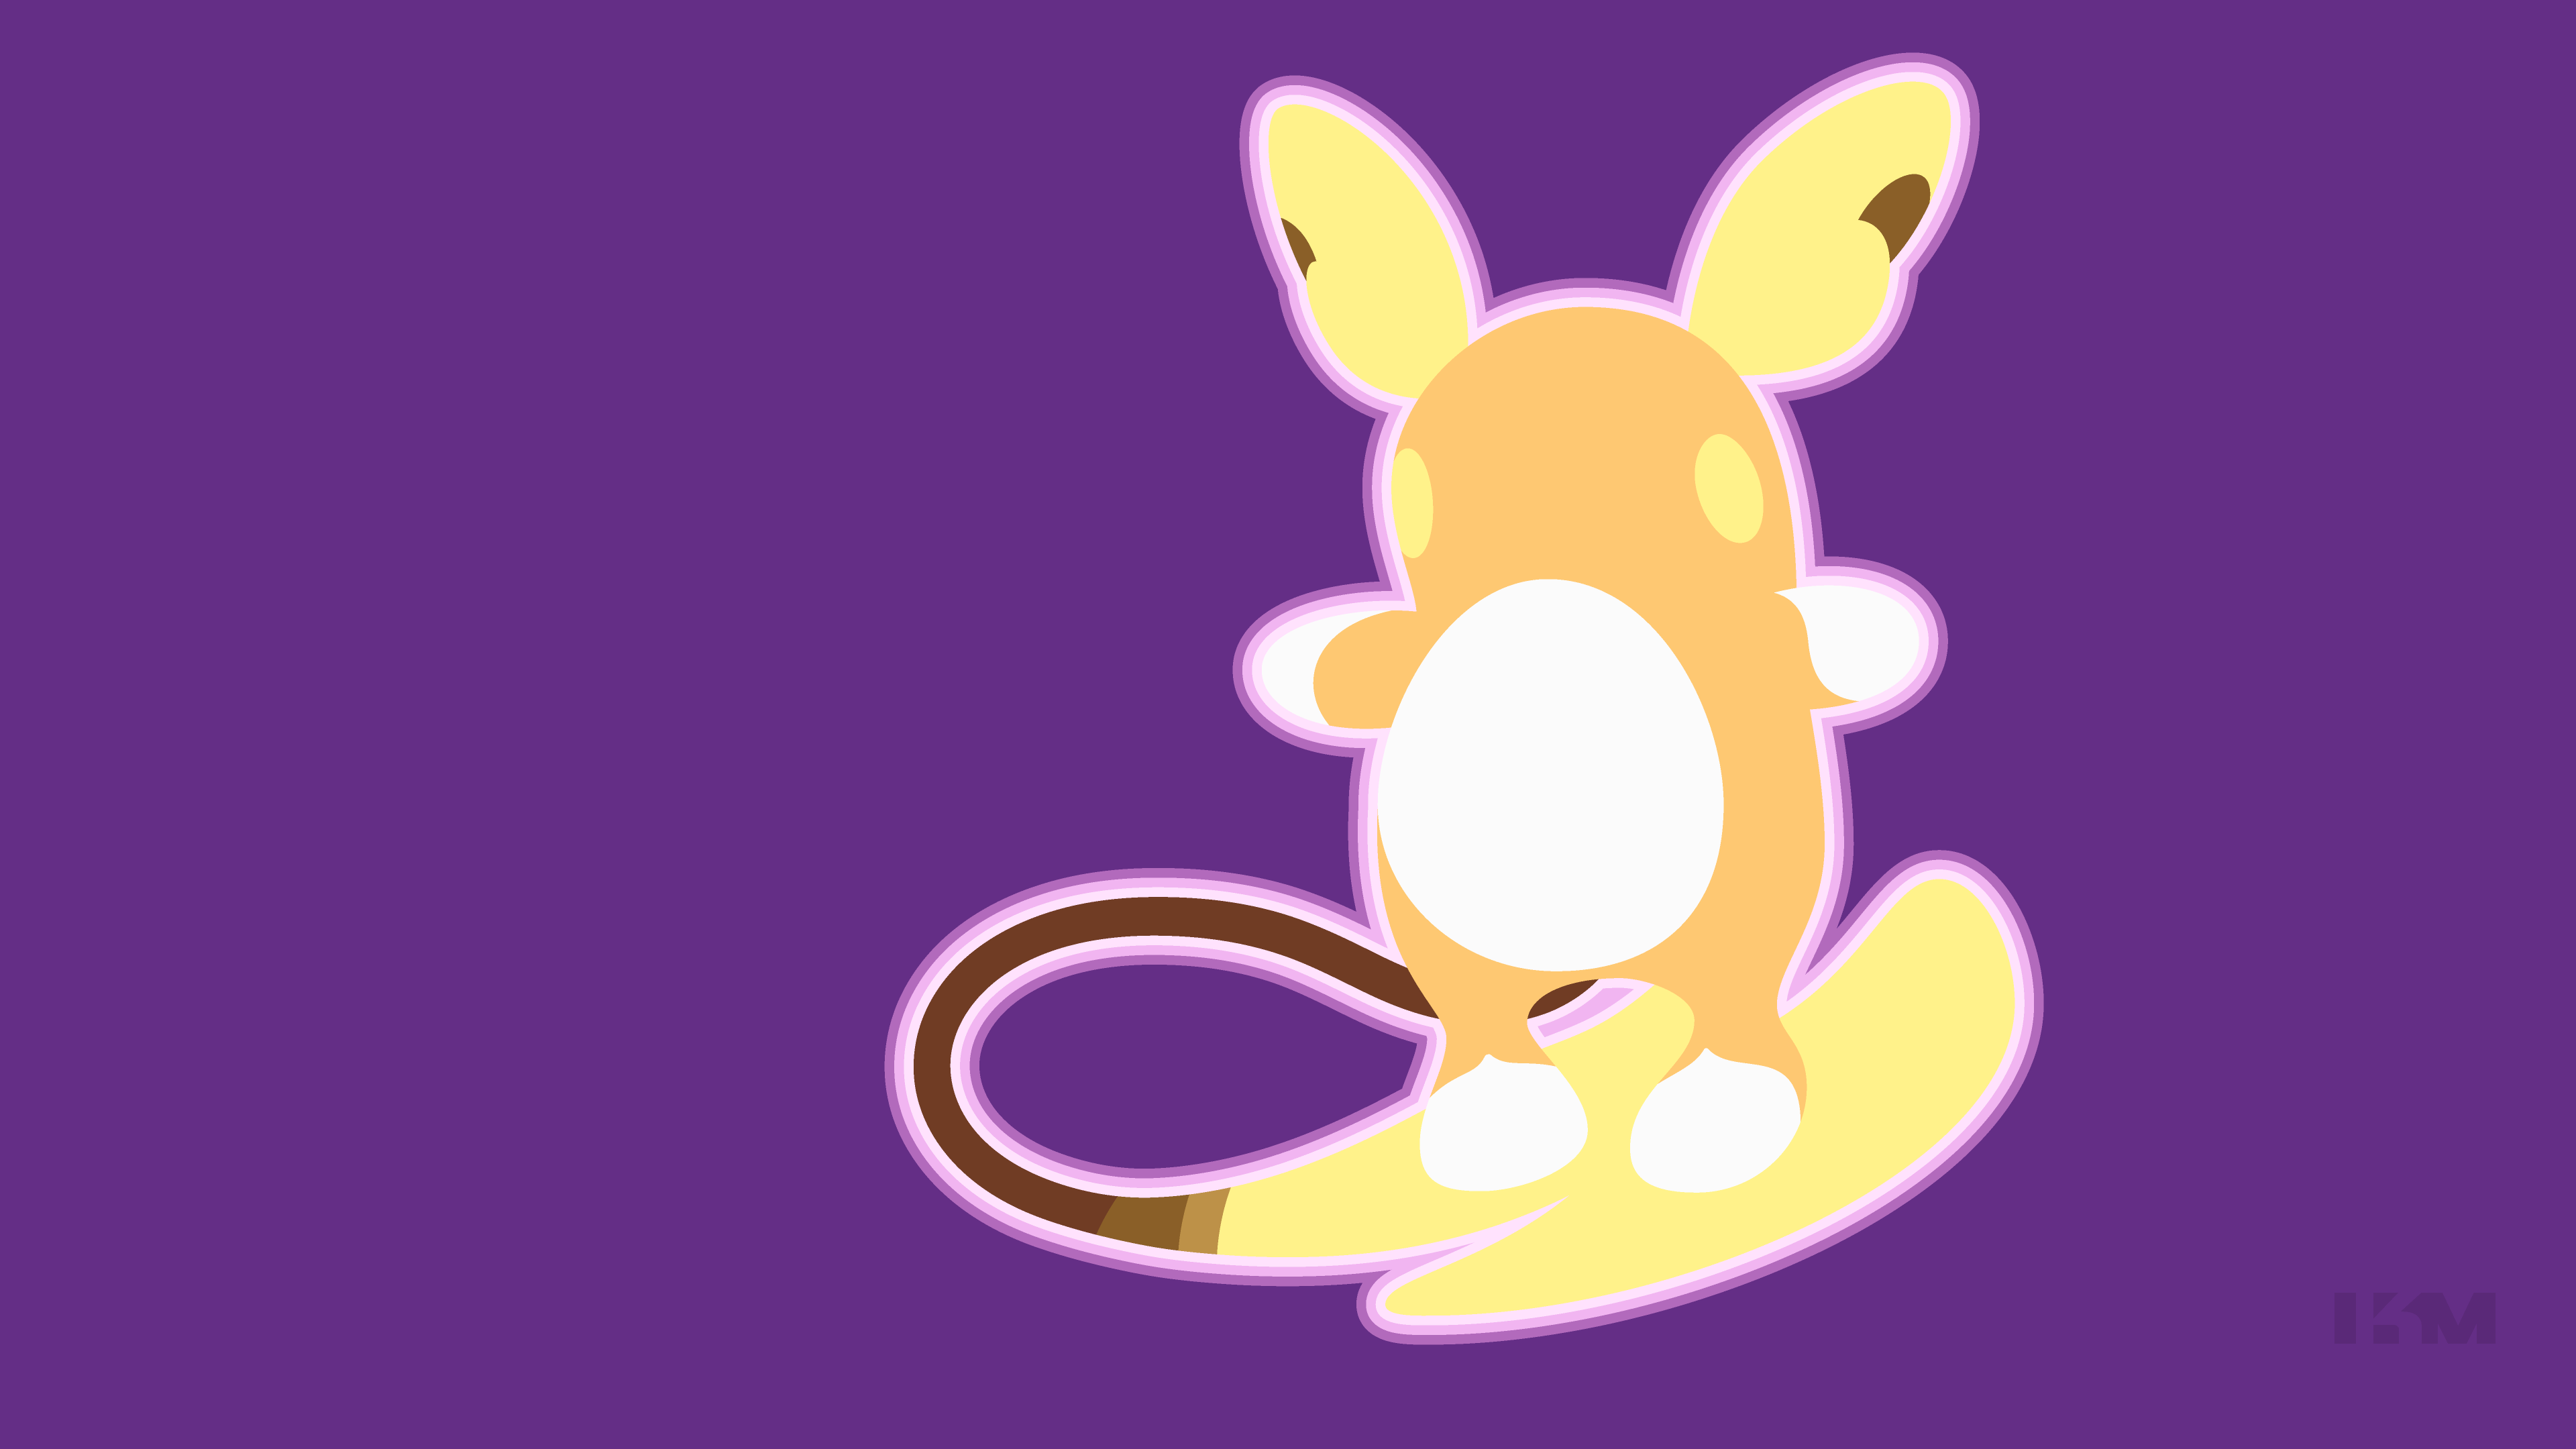 Raichu - Alola Form Computer Wallpapers, Desktop Backgrounds ...